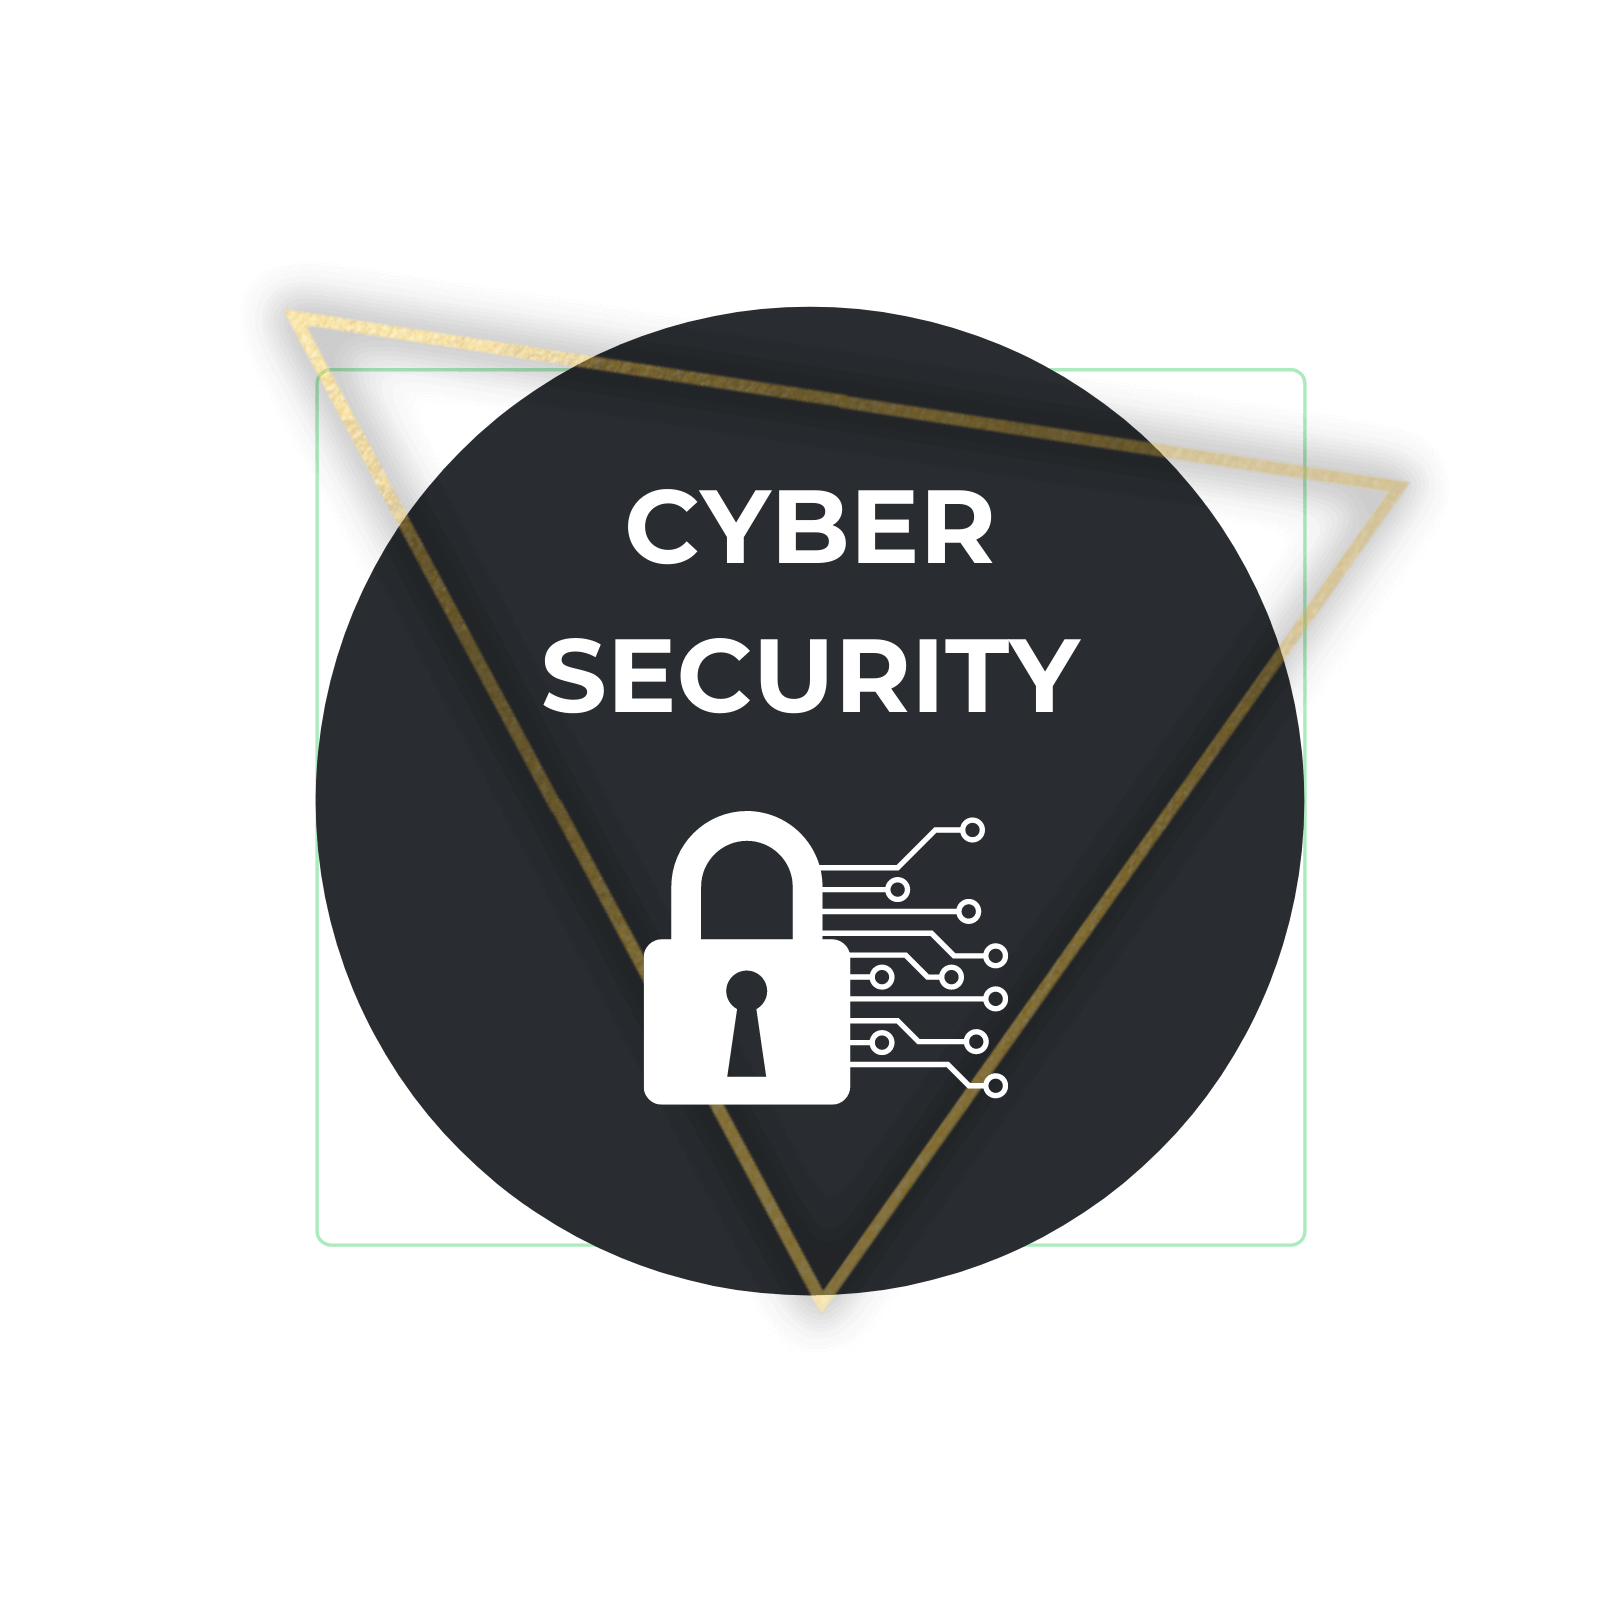 Cyber Security, Agile Business Concepts